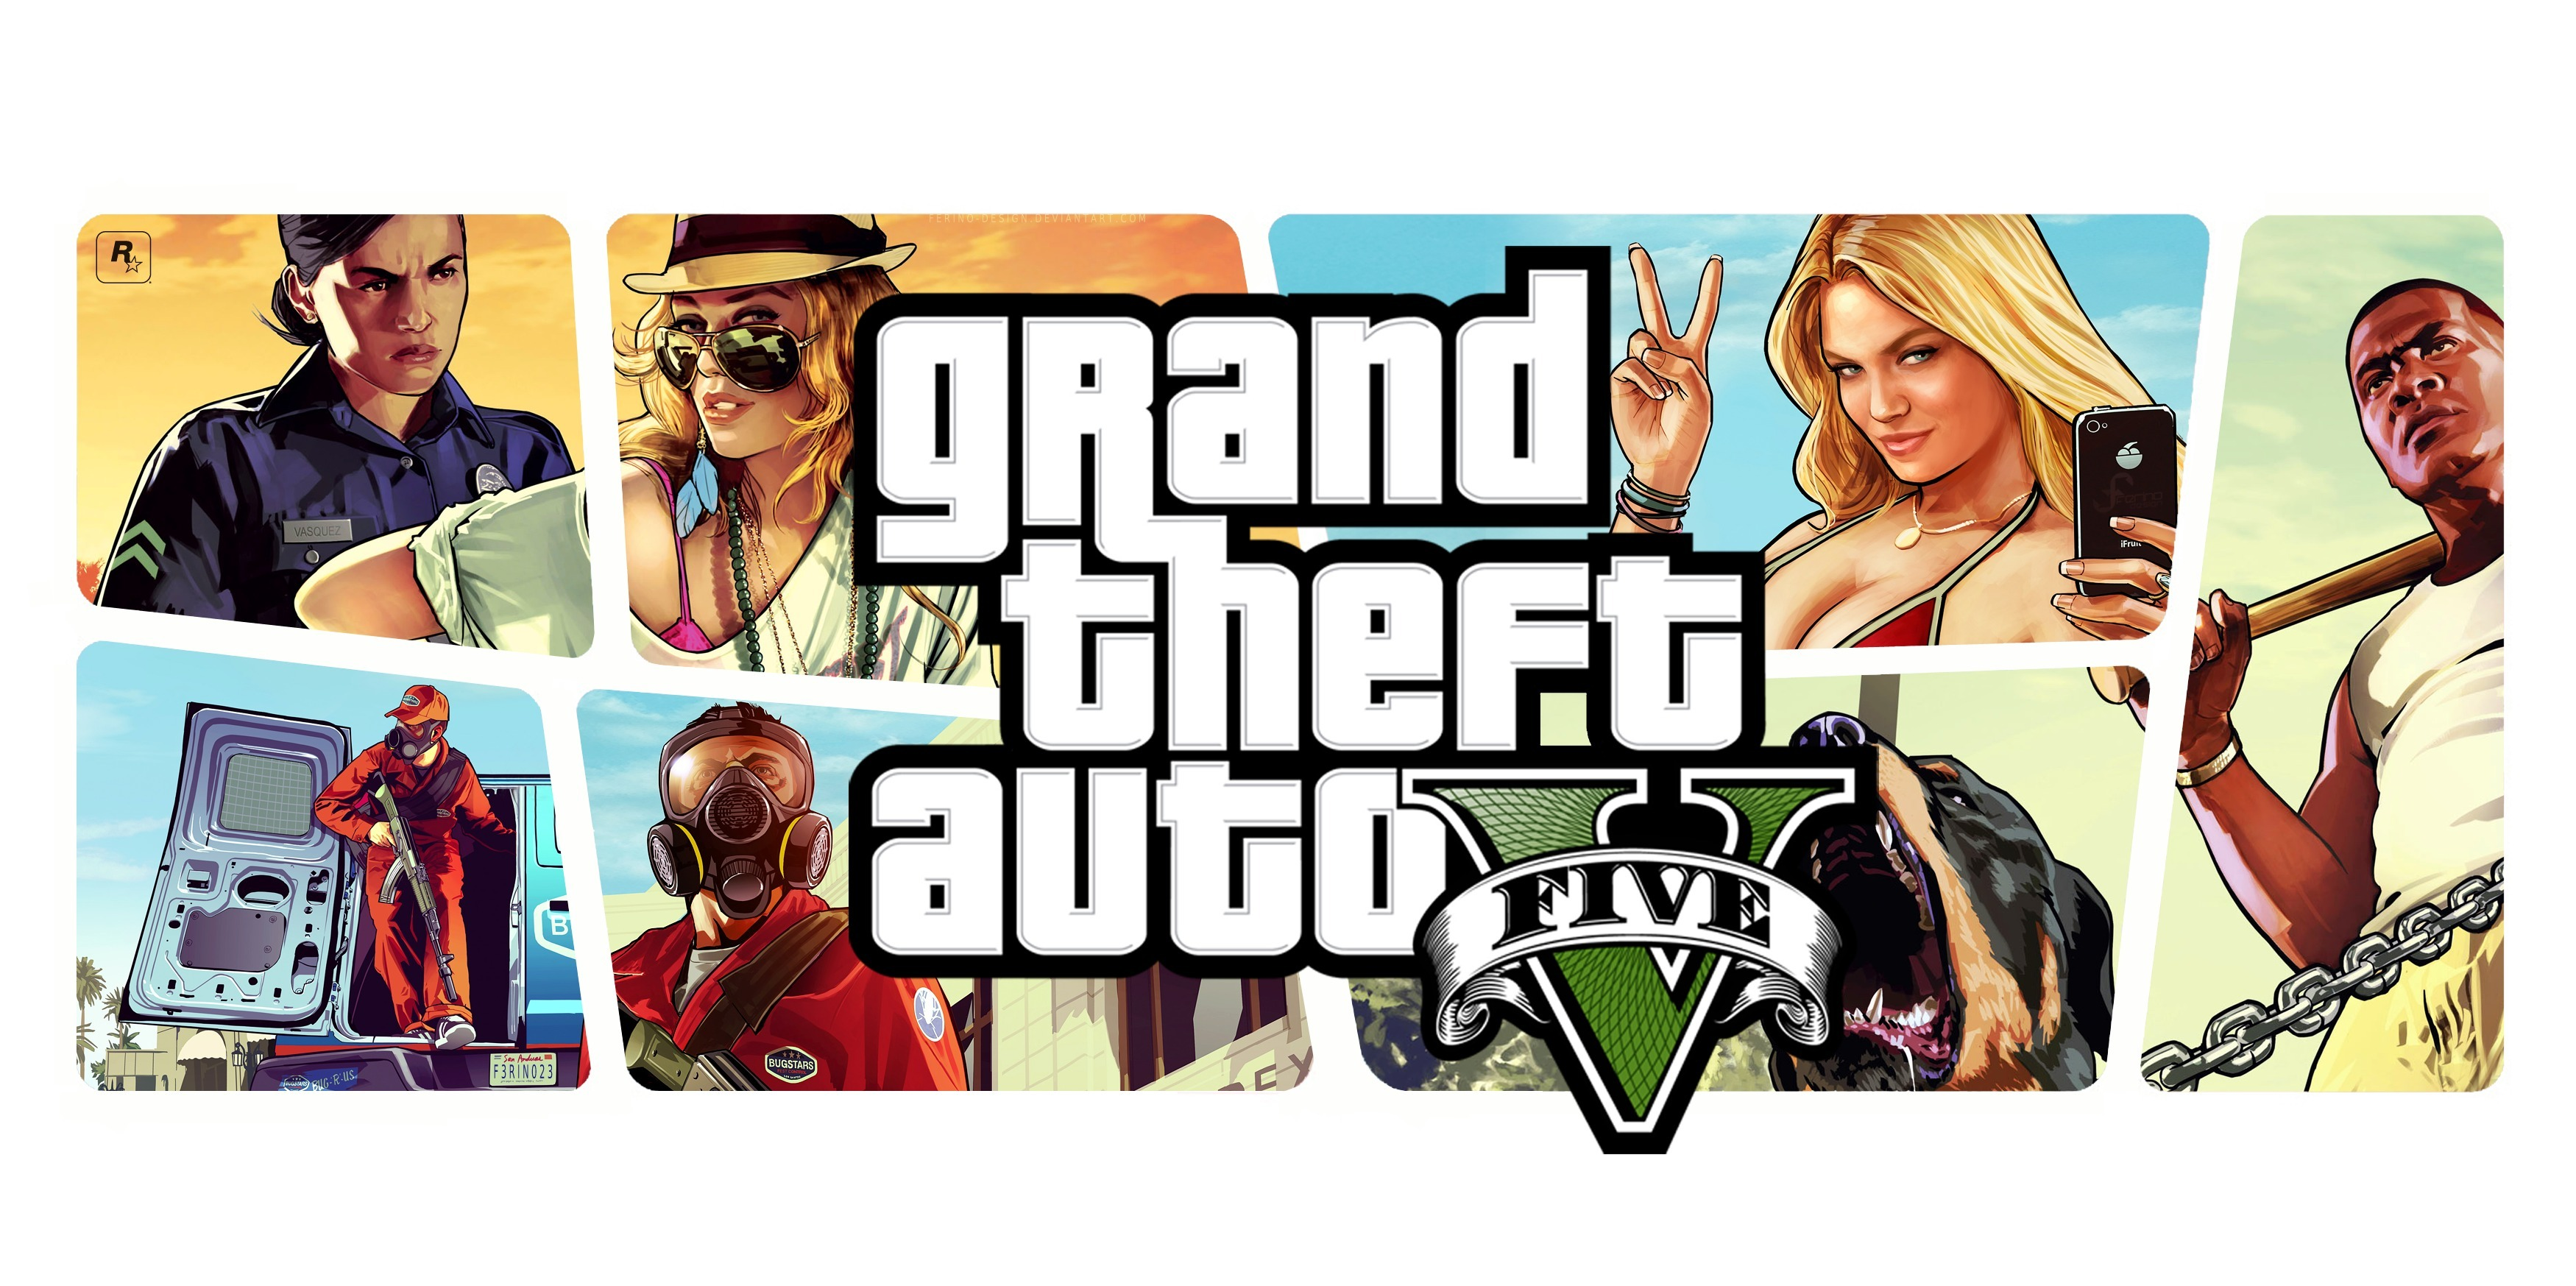 HD image of gta5, image of grand theft auto5, gta ImageBank.biz